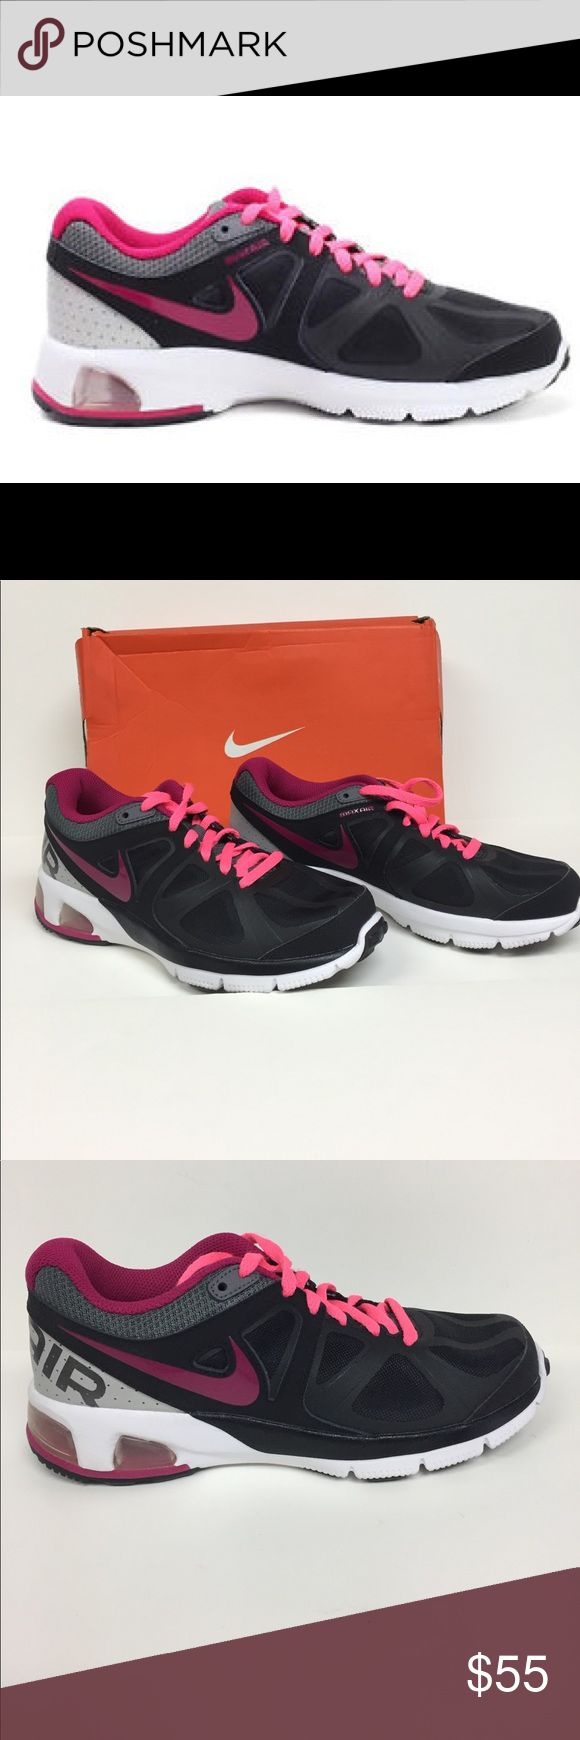 finest selection 6789c e0cd1 Nike Air Max Run Lite 4 Running Shoe 554894002 Awesome running shoes by  Nike.